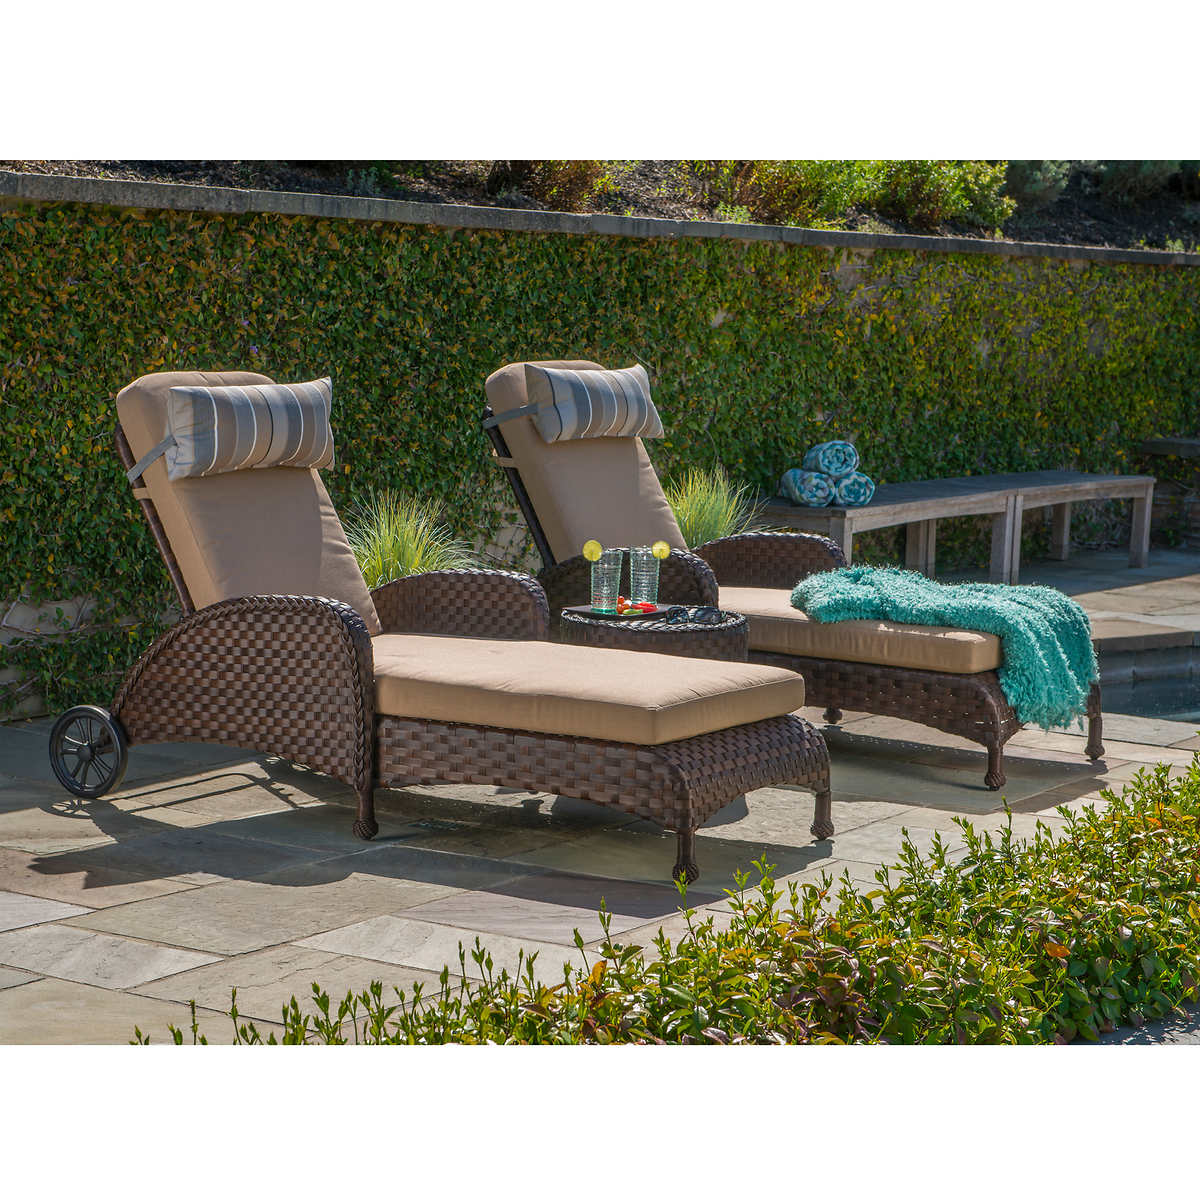 Resin Wicker Lounge Chairs chaise lounges | costco